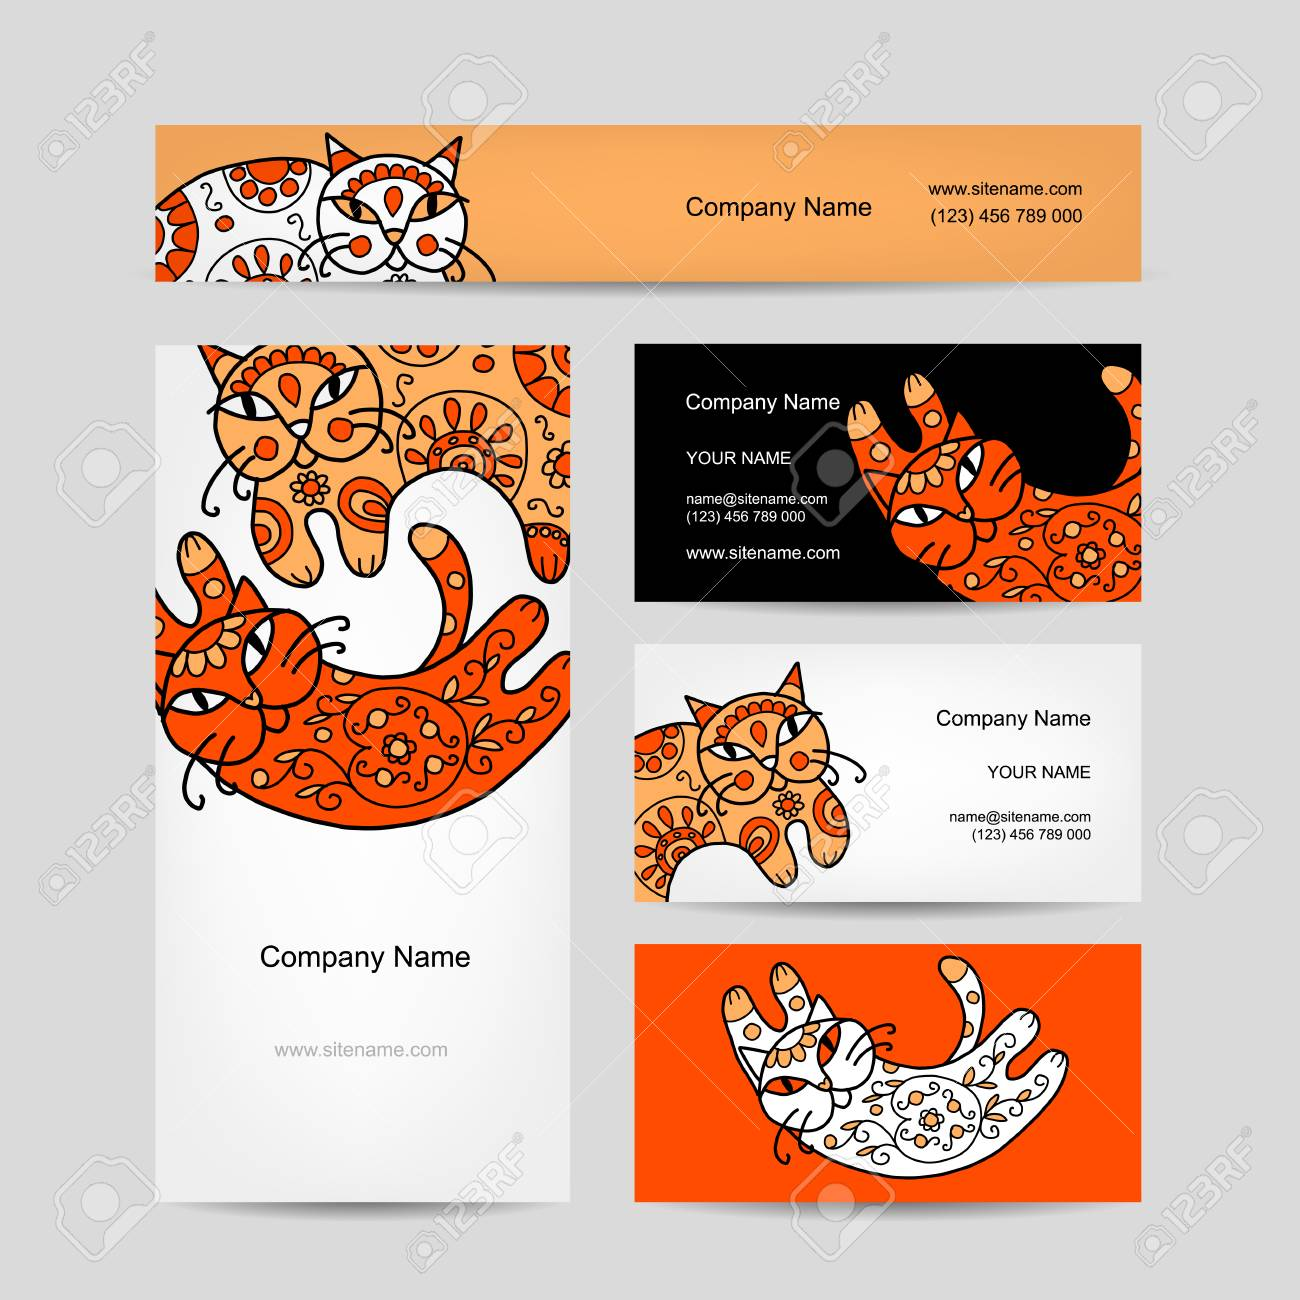 Art cats with floral ornament business cards design royalty free art cats with floral ornament business cards design stock vector 31730753 reheart Image collections